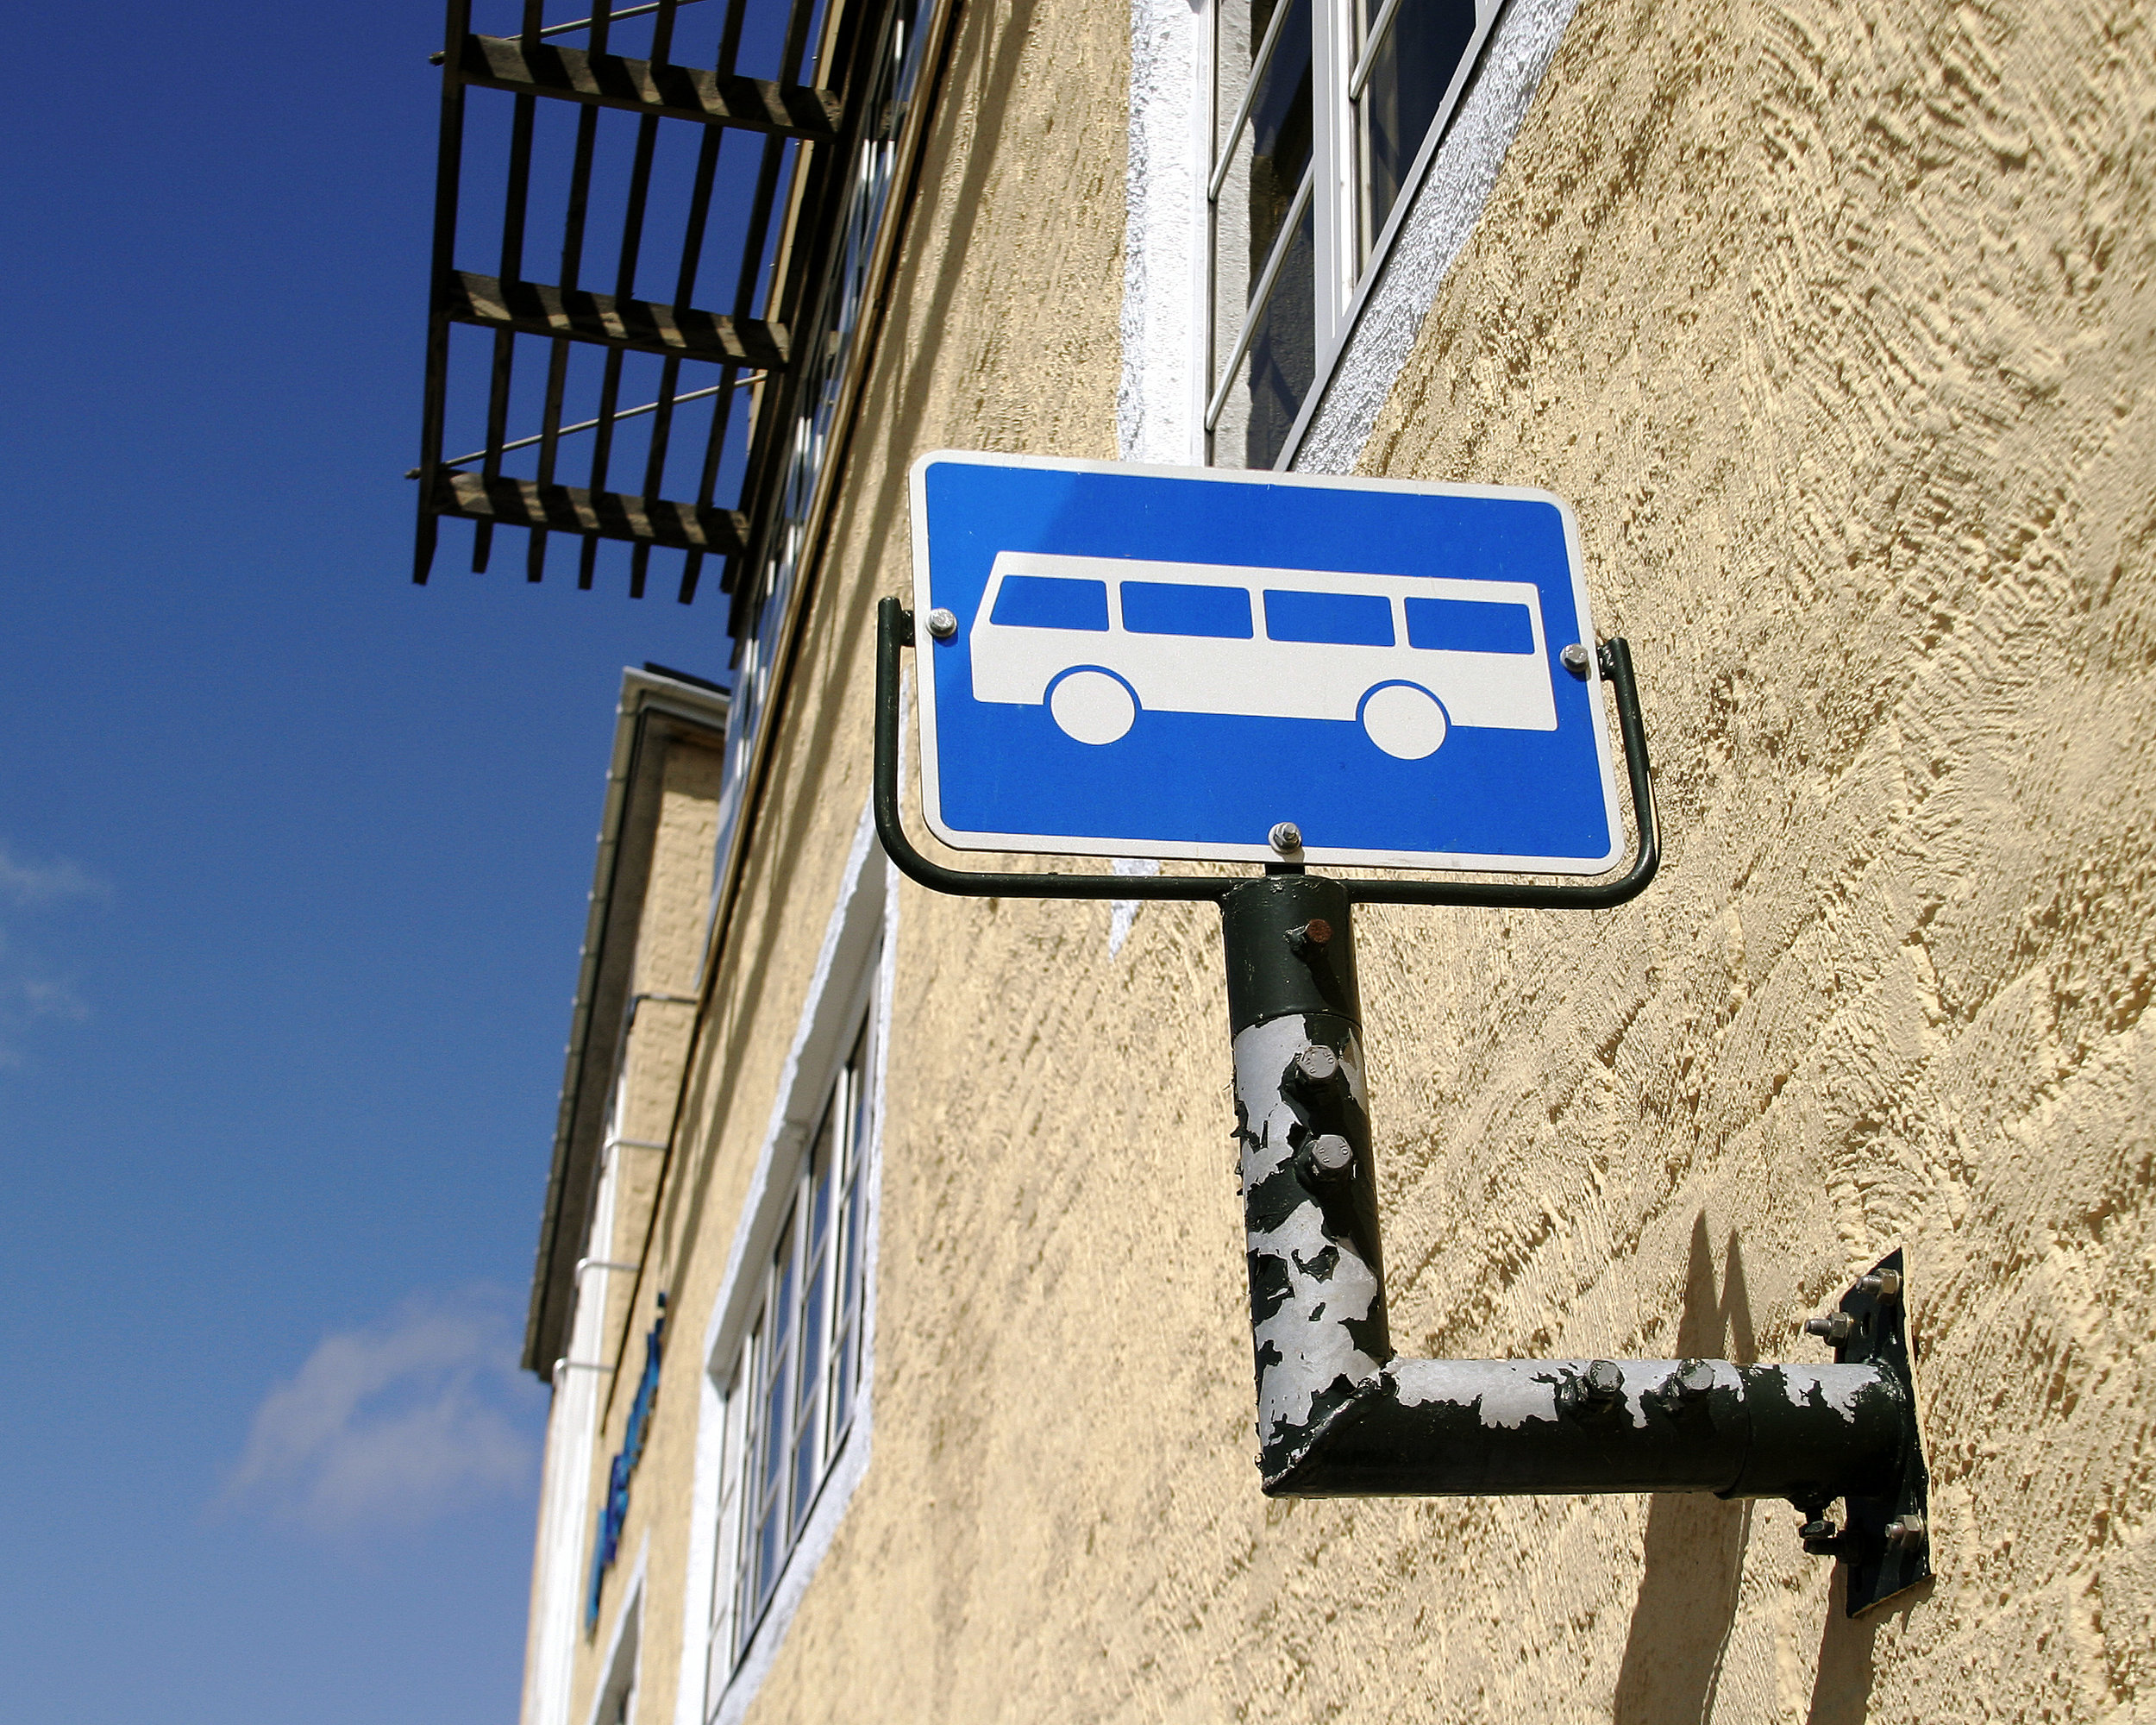 photodune-261396-bus-stop-m.jpg